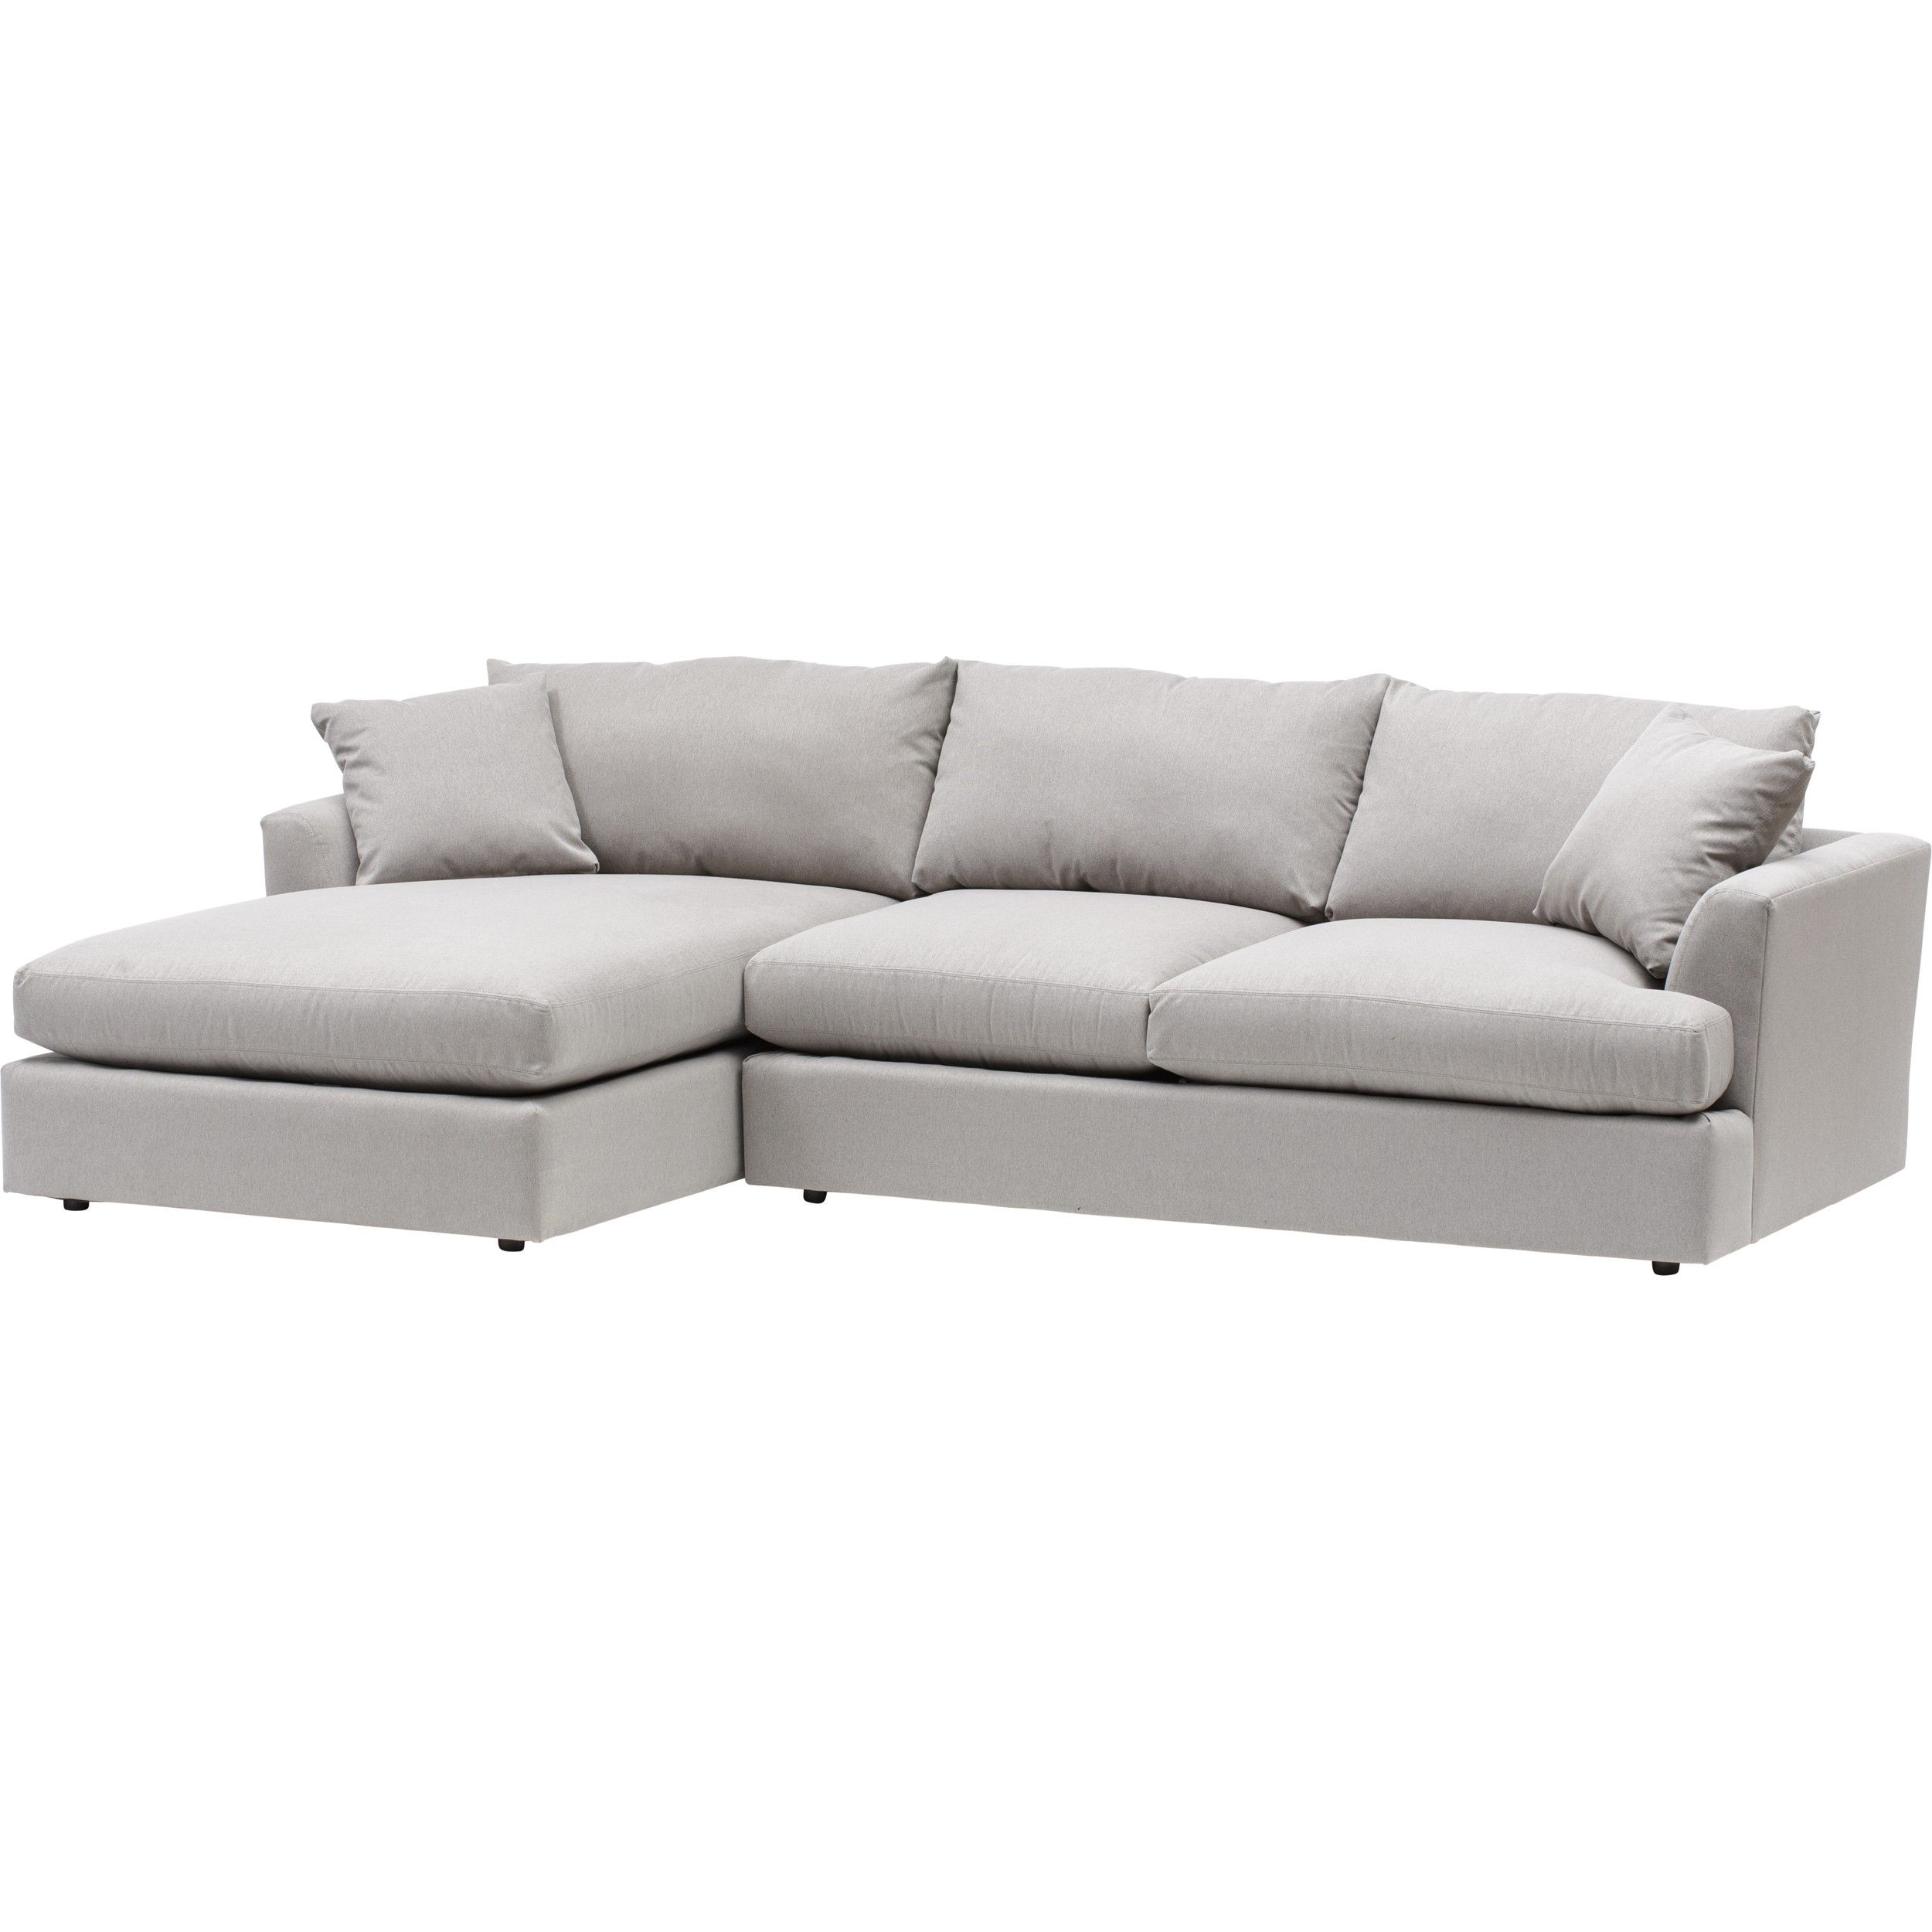 High Fashion Home Andre Sectional Dawson Cement $2 099 00 I think